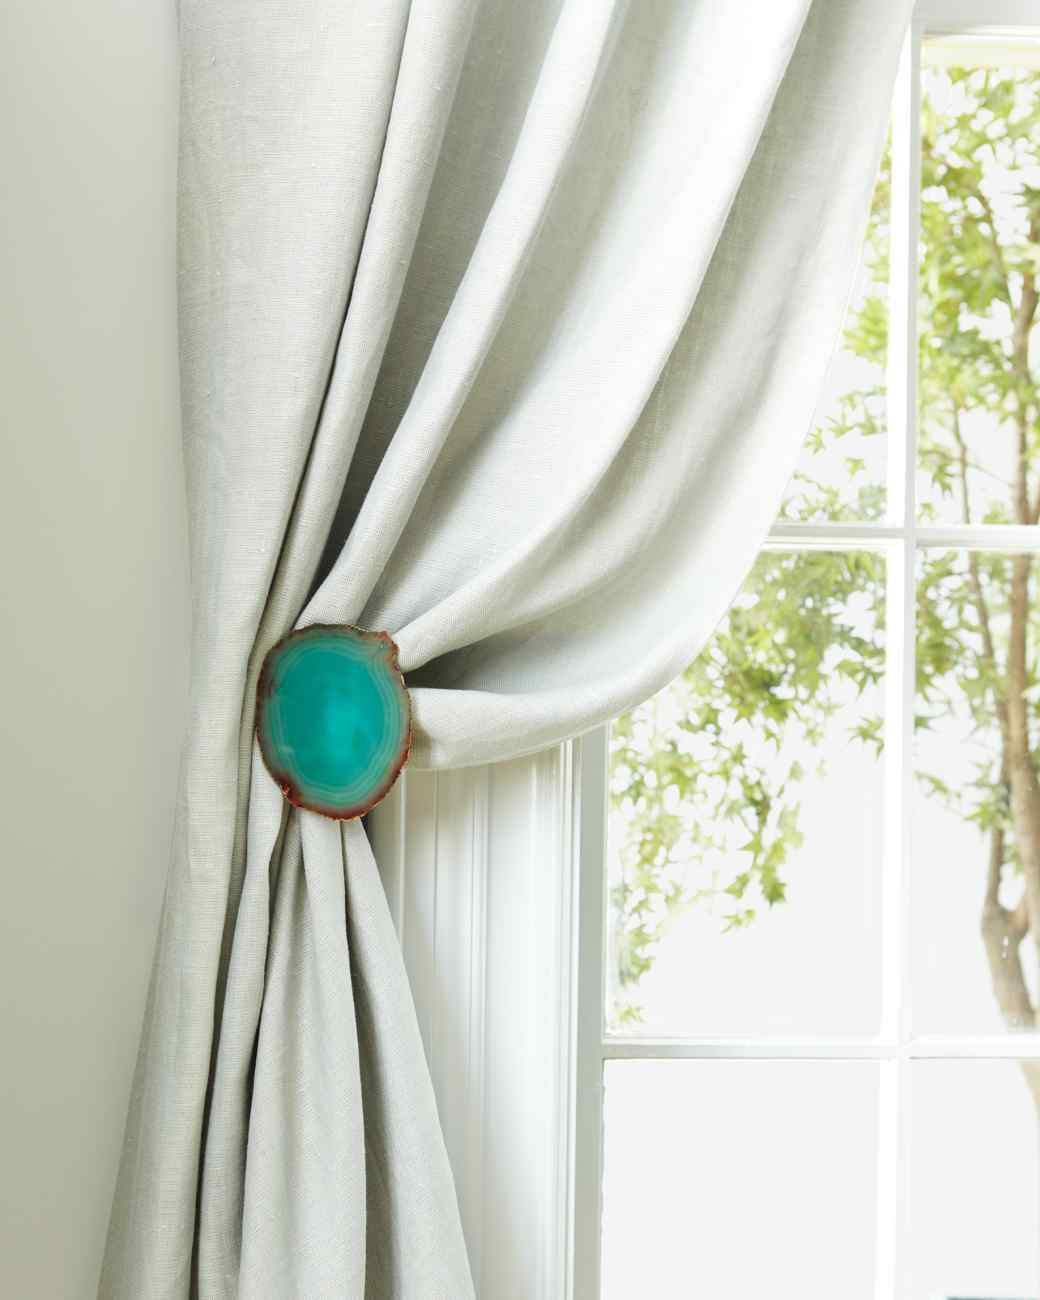 Best ideas about DIY Curtain Tie Back . Save or Pin 64 DIY Curtain Tie Backs Now.